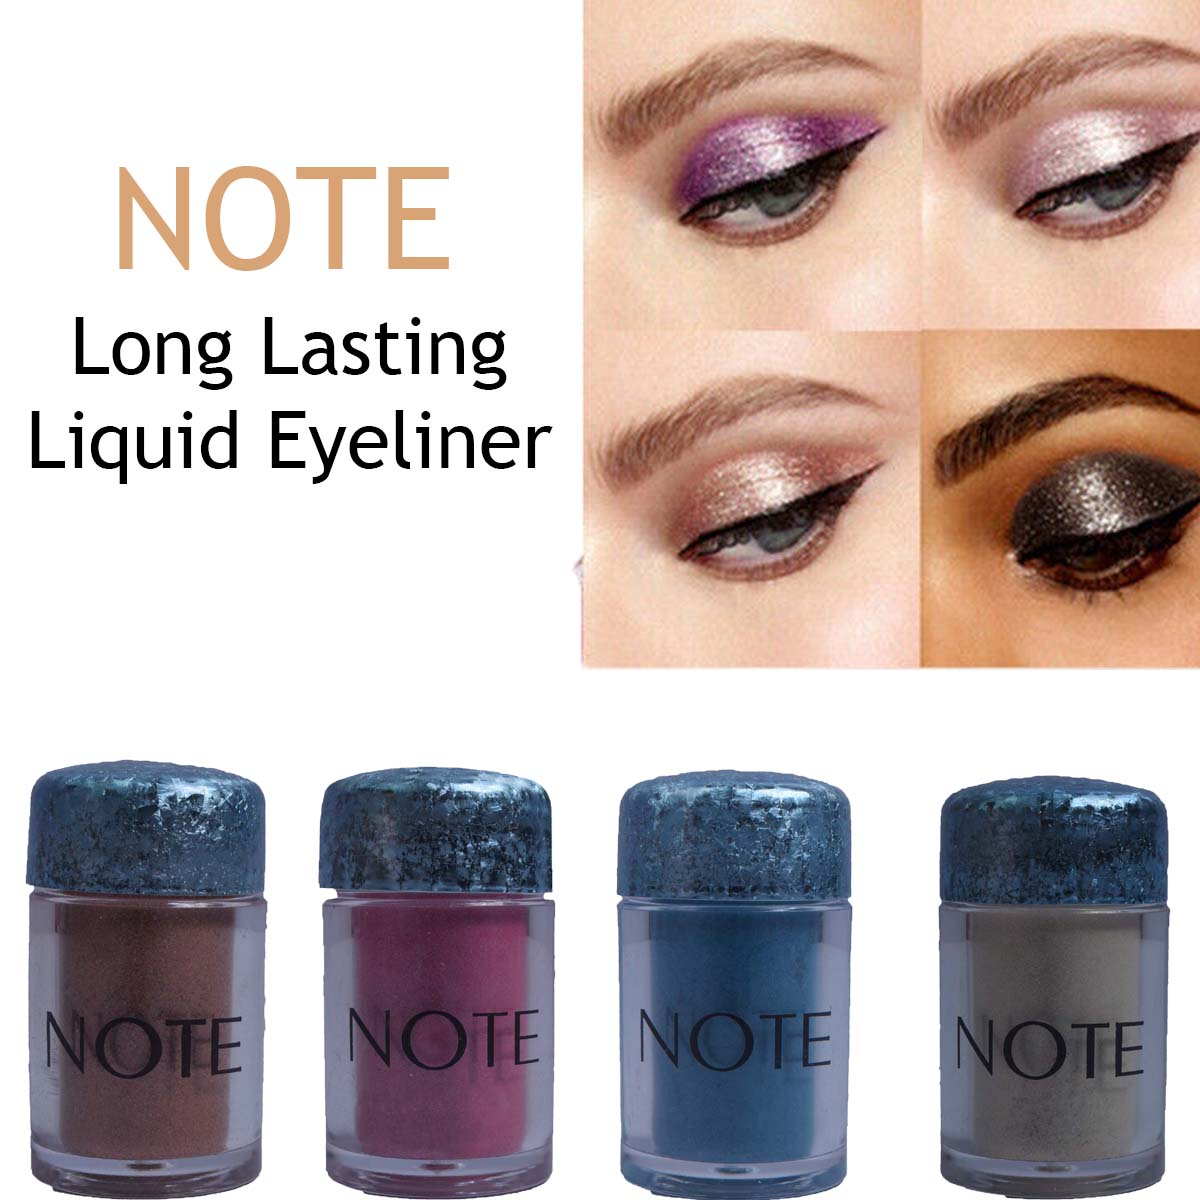 Note Long Lasting Liquid Eyeliner - JW005